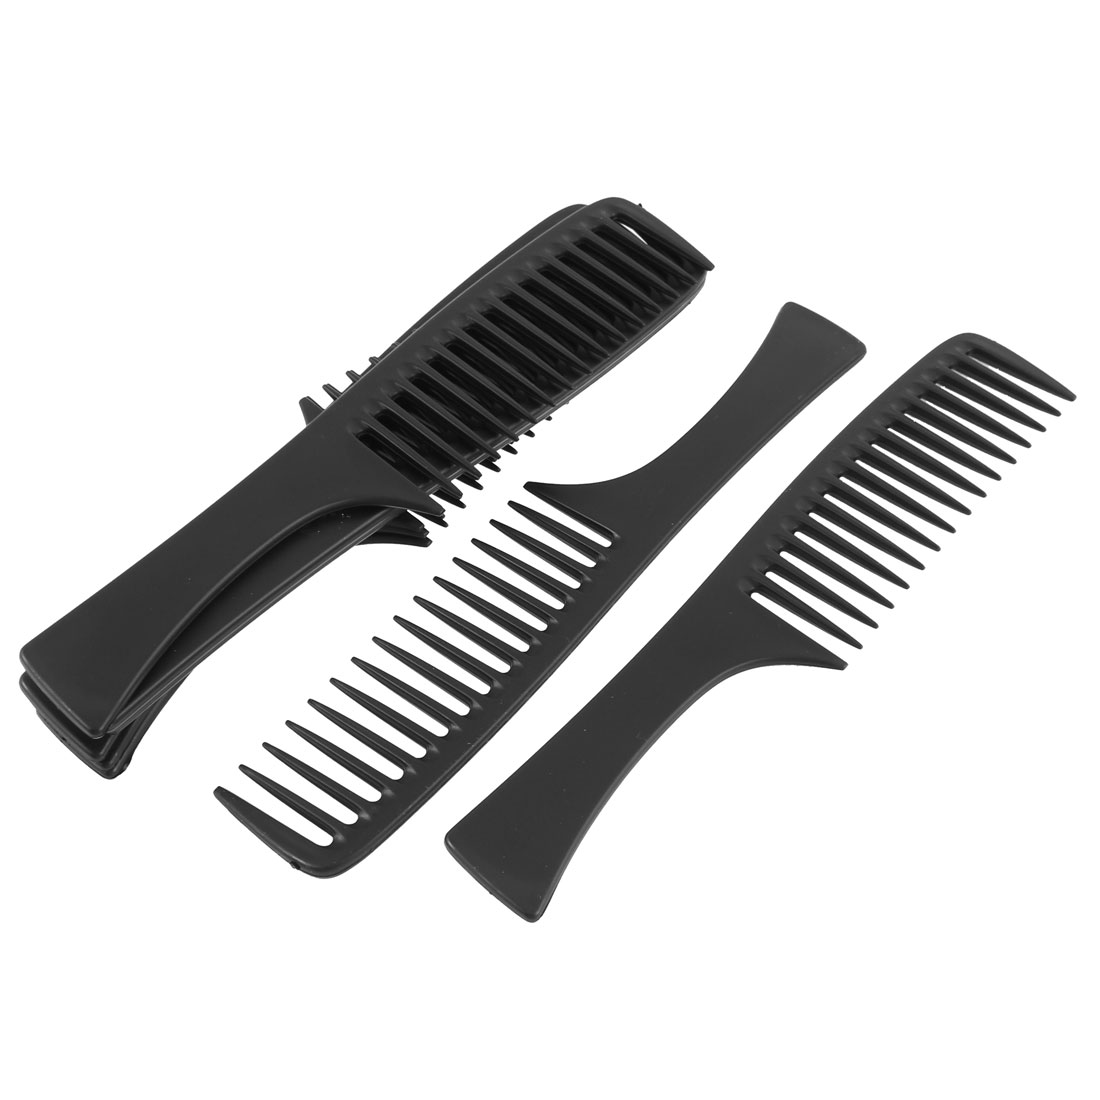 Plastic Wide Tooth Hairstyle Hair Combs Black 22cm Length 8Pcs